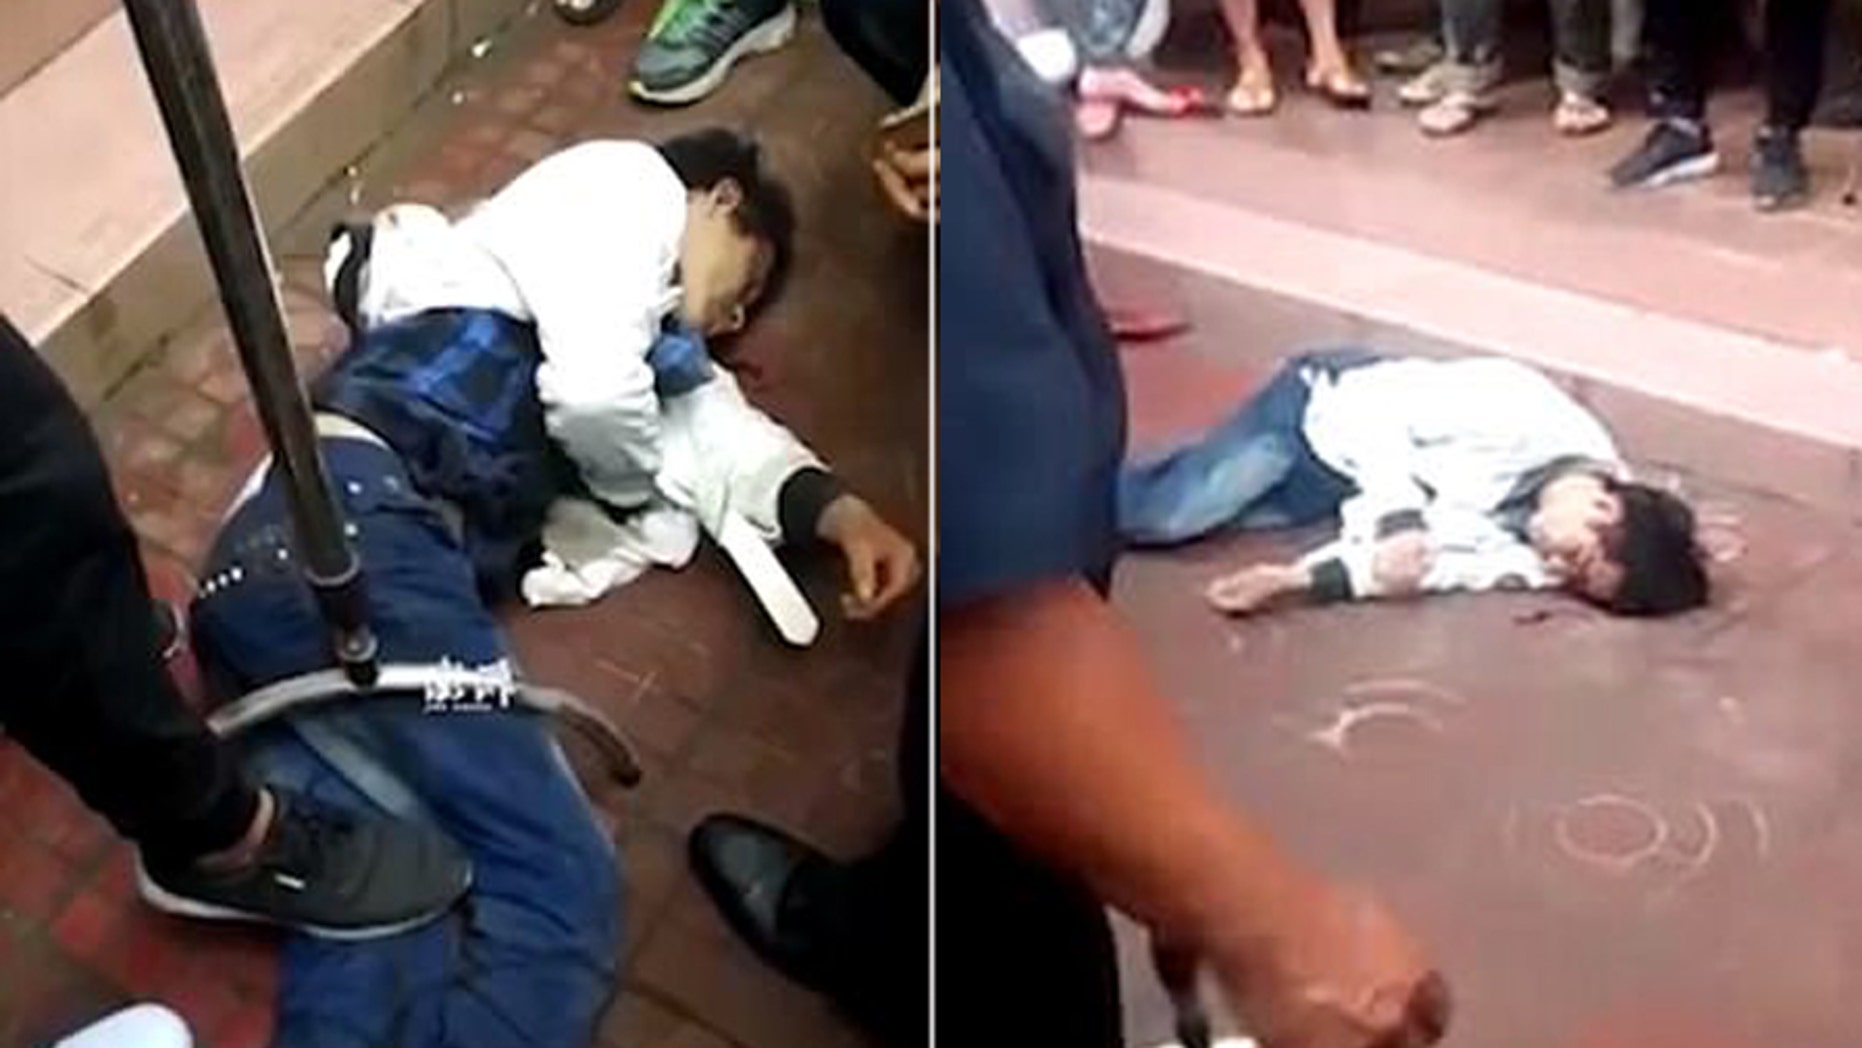 Video at a school in China showed a man on the ground after he allegedly barged into an elementary school and slashed five children.